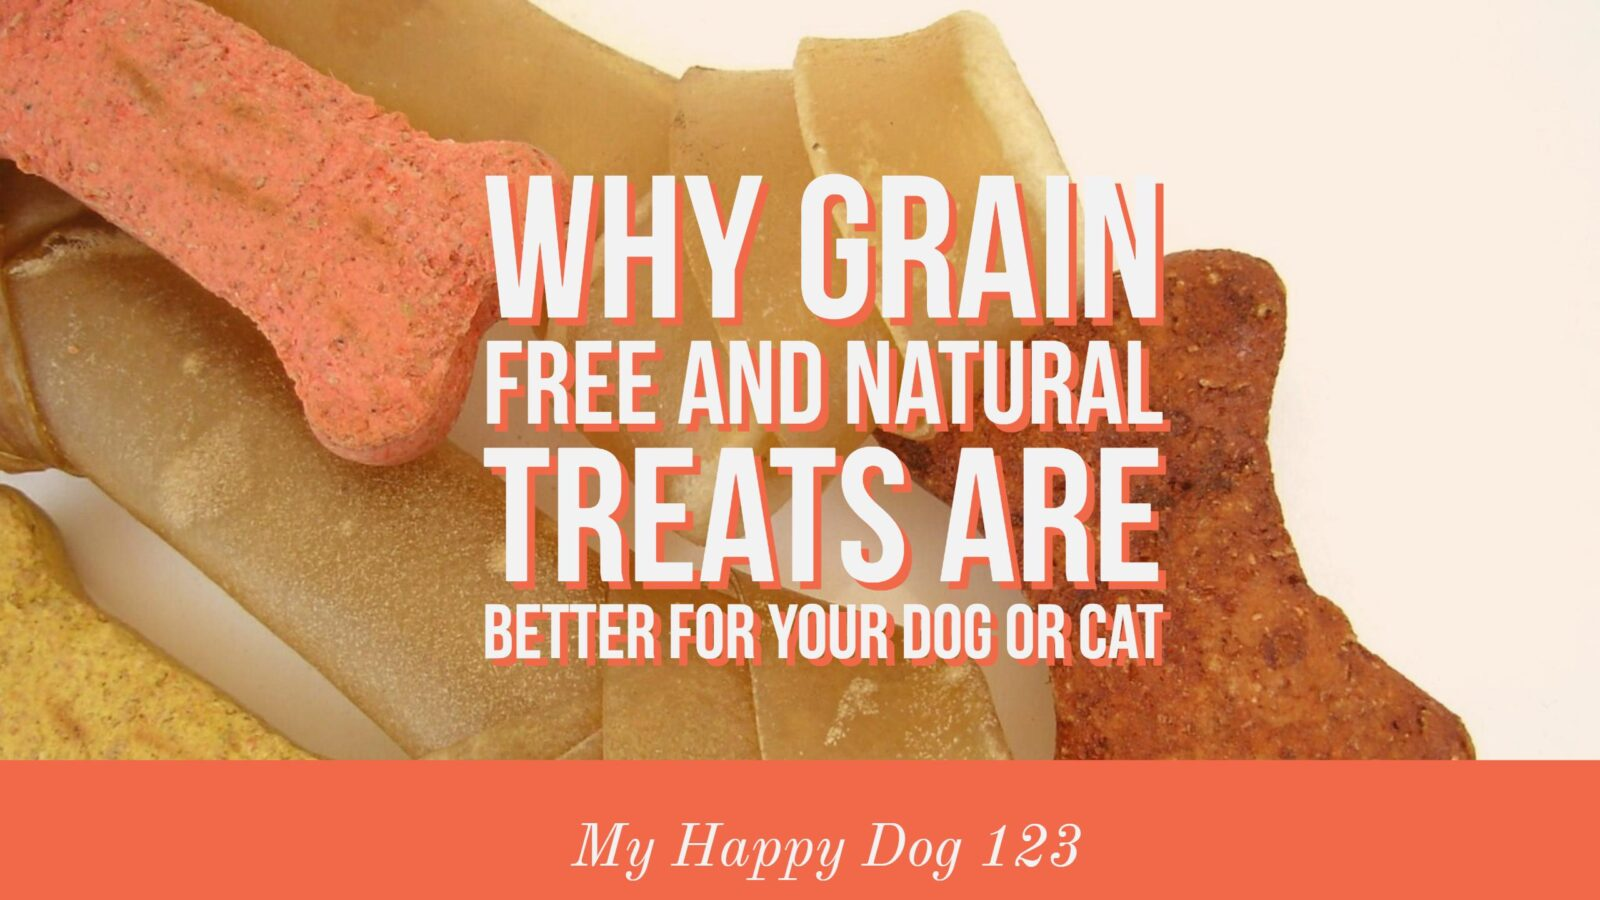 Why Grain Free and Natural Treats are Better For Your Dog or Cat